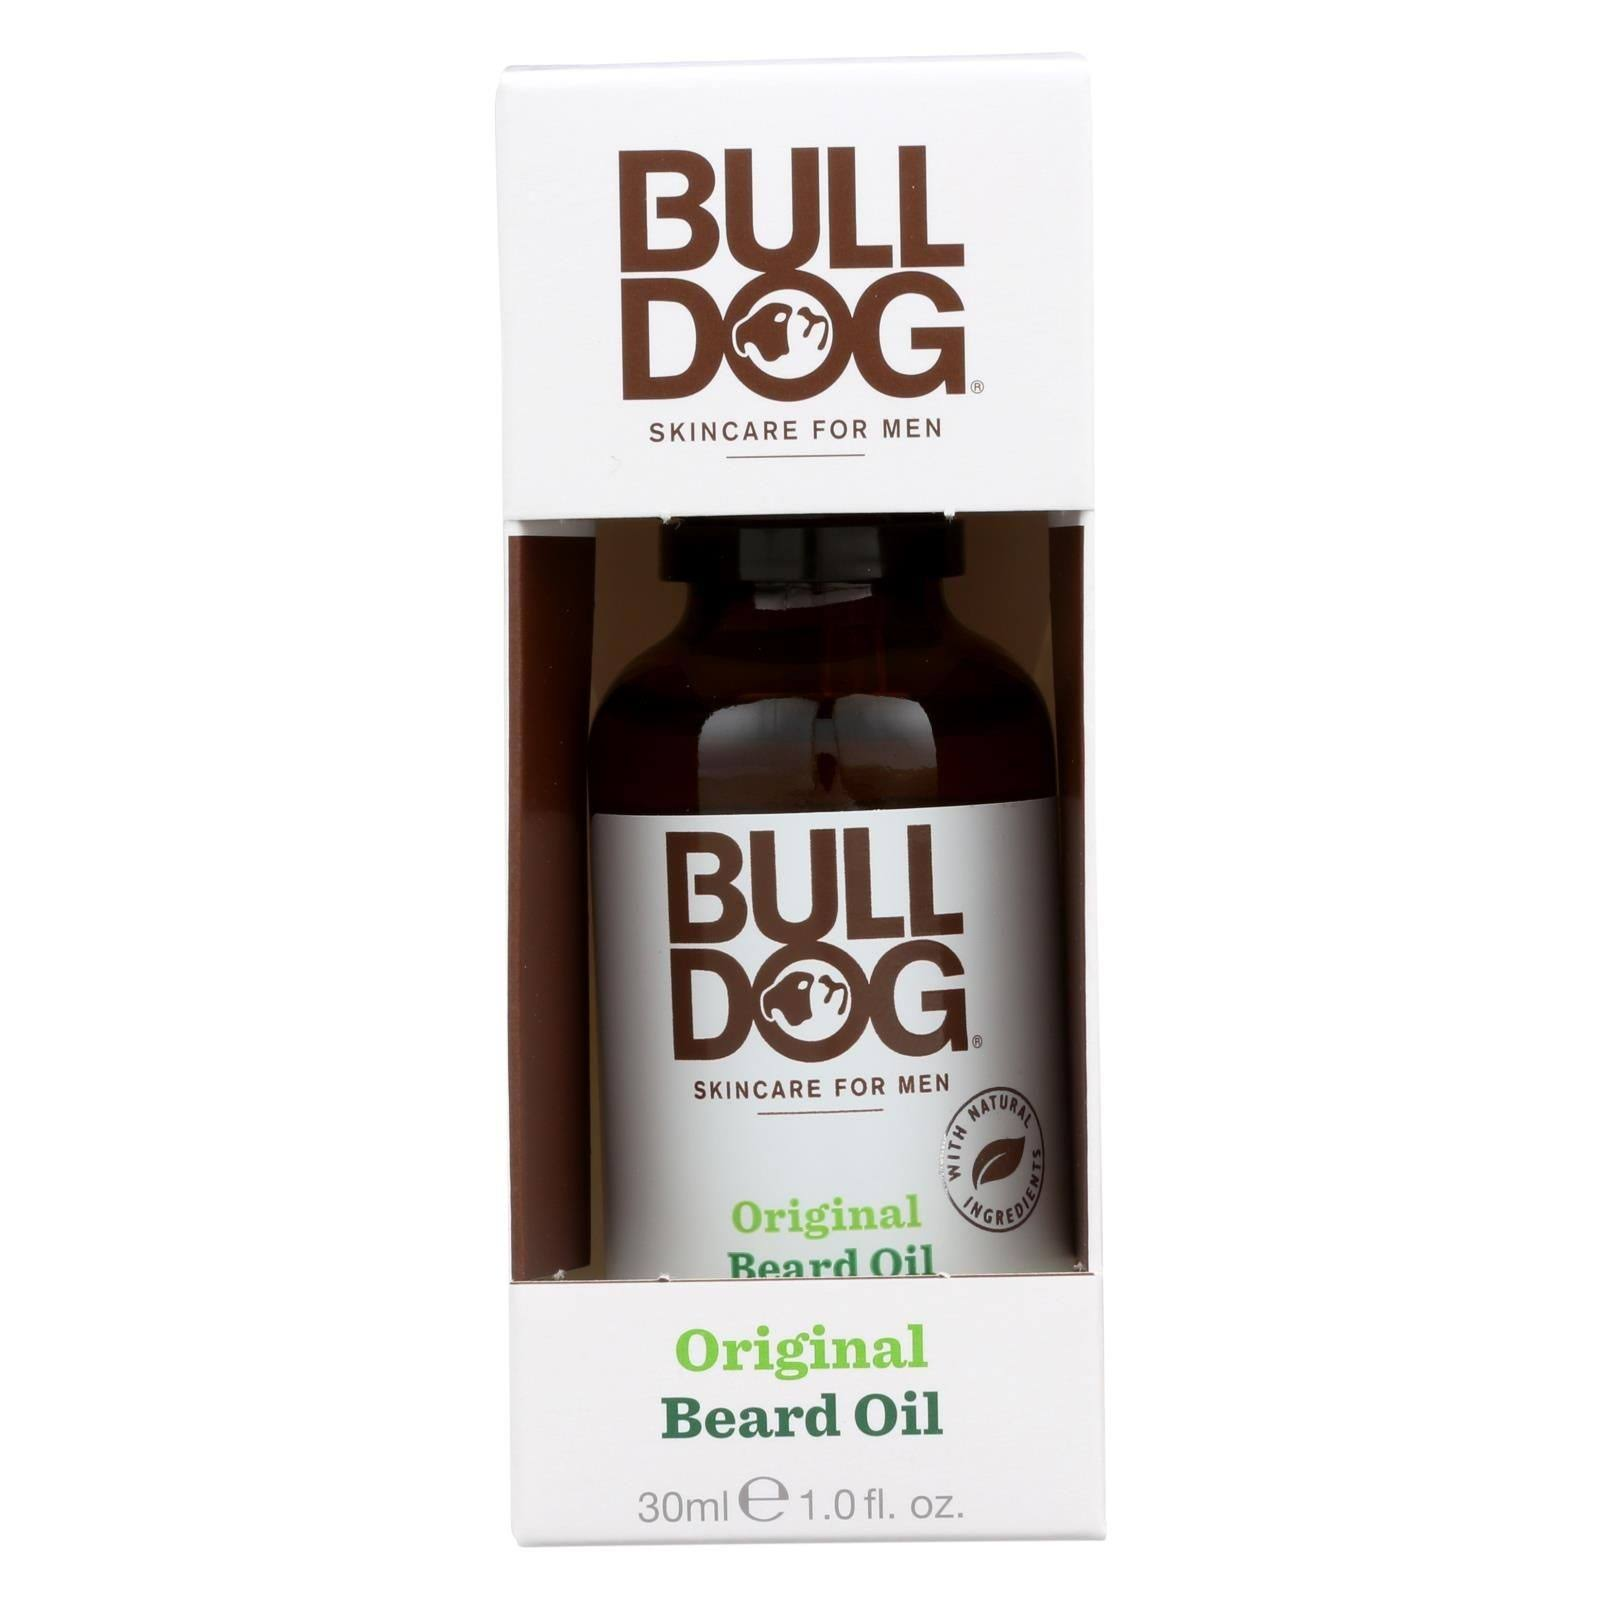 Bulldog Skincare for Men Original Beard Oil - 1 Oz